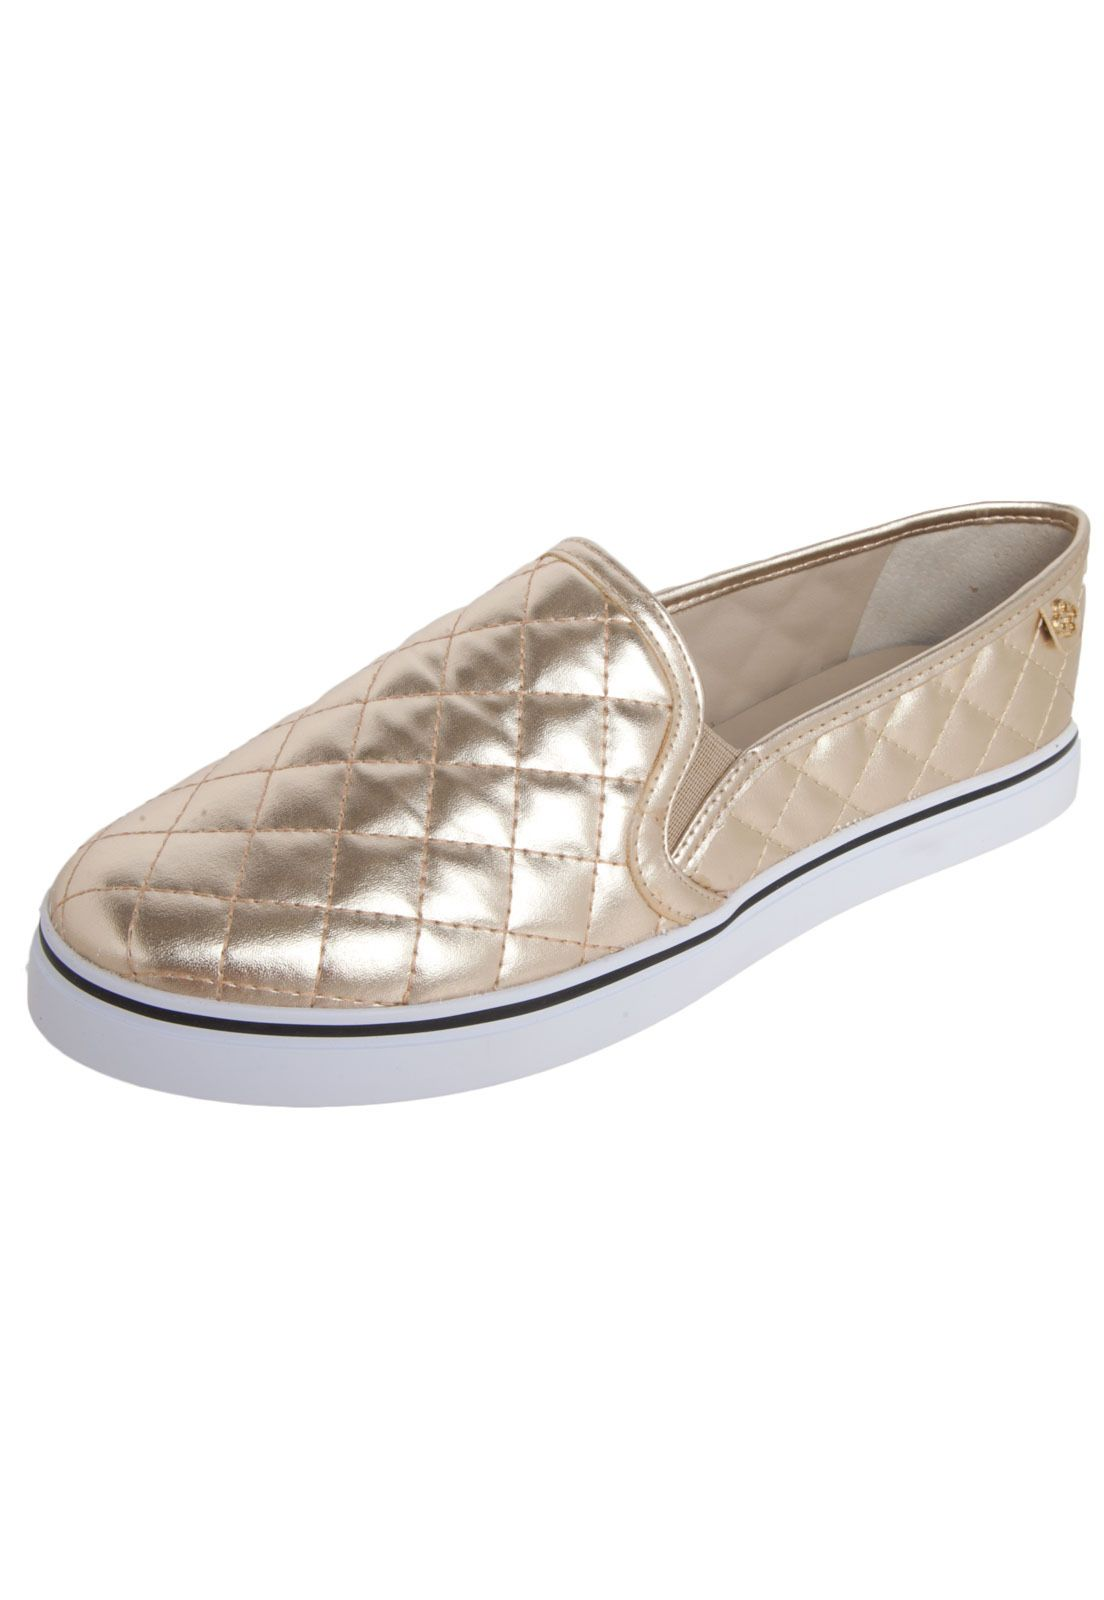 47d8665e3 Tênis Casual Capodarte Slip-on Dourado | S H O E S | Fashion shoes ...